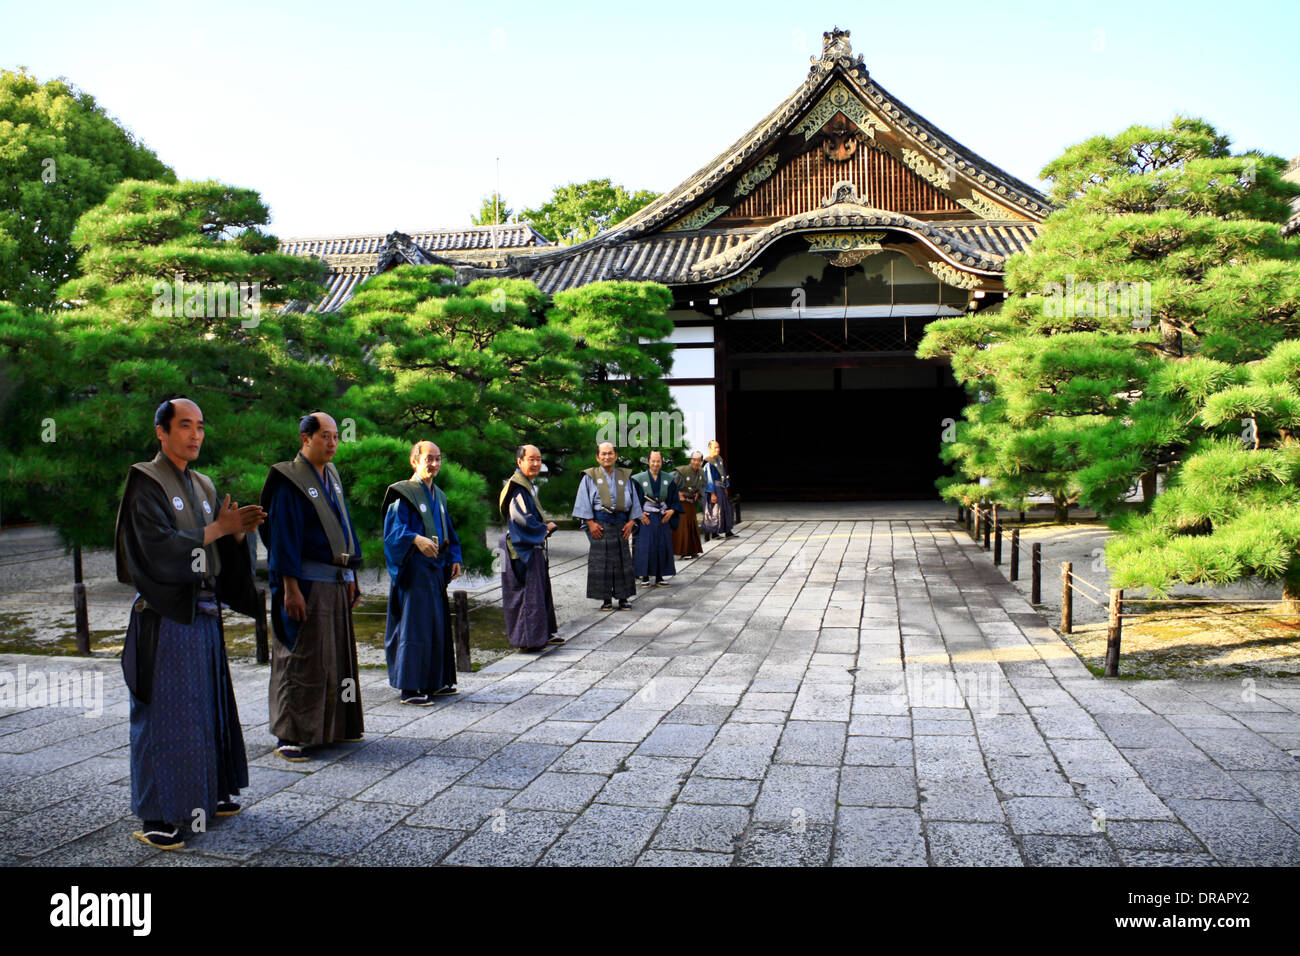 A Samurai setting and atmosphere at Nishi Honganji temple ...